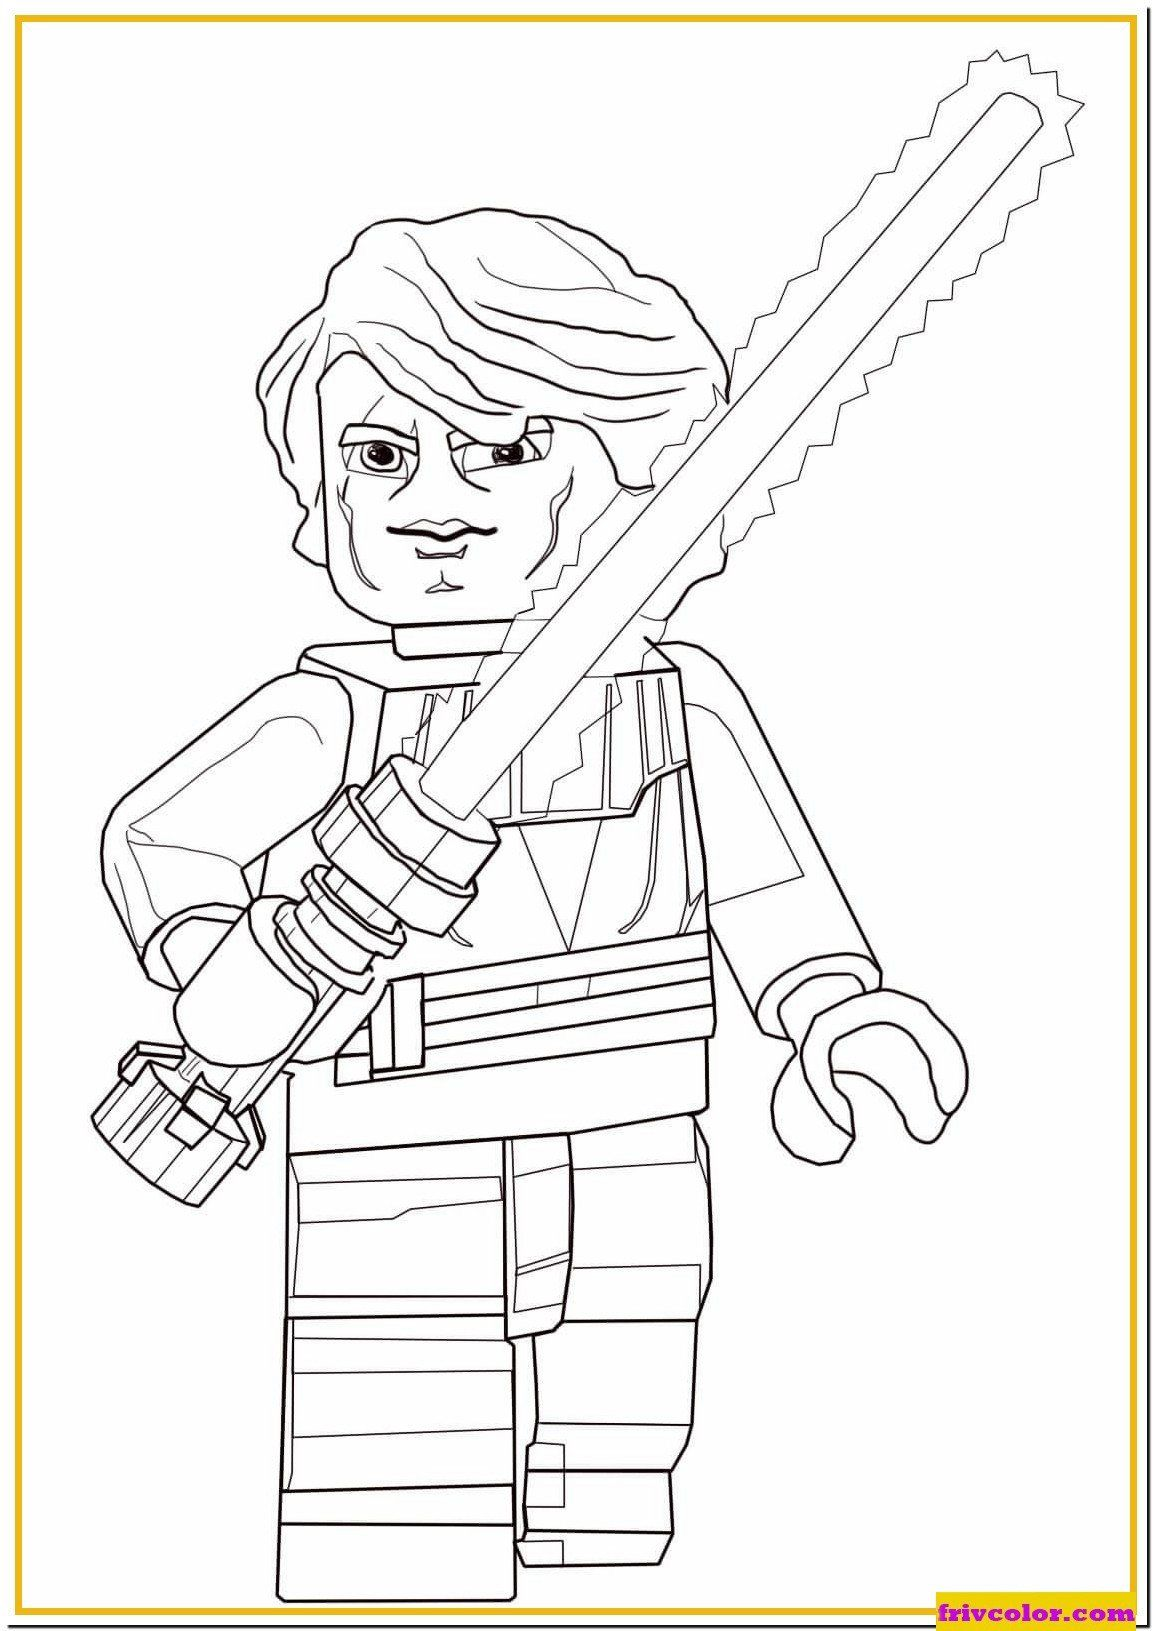 Lego Starwars Coloring Page Lego Star Wars Anakin Skywalker Friv Free Coloring Pages Lego Star Wars Star Wars Colors Lego Coloring Pages